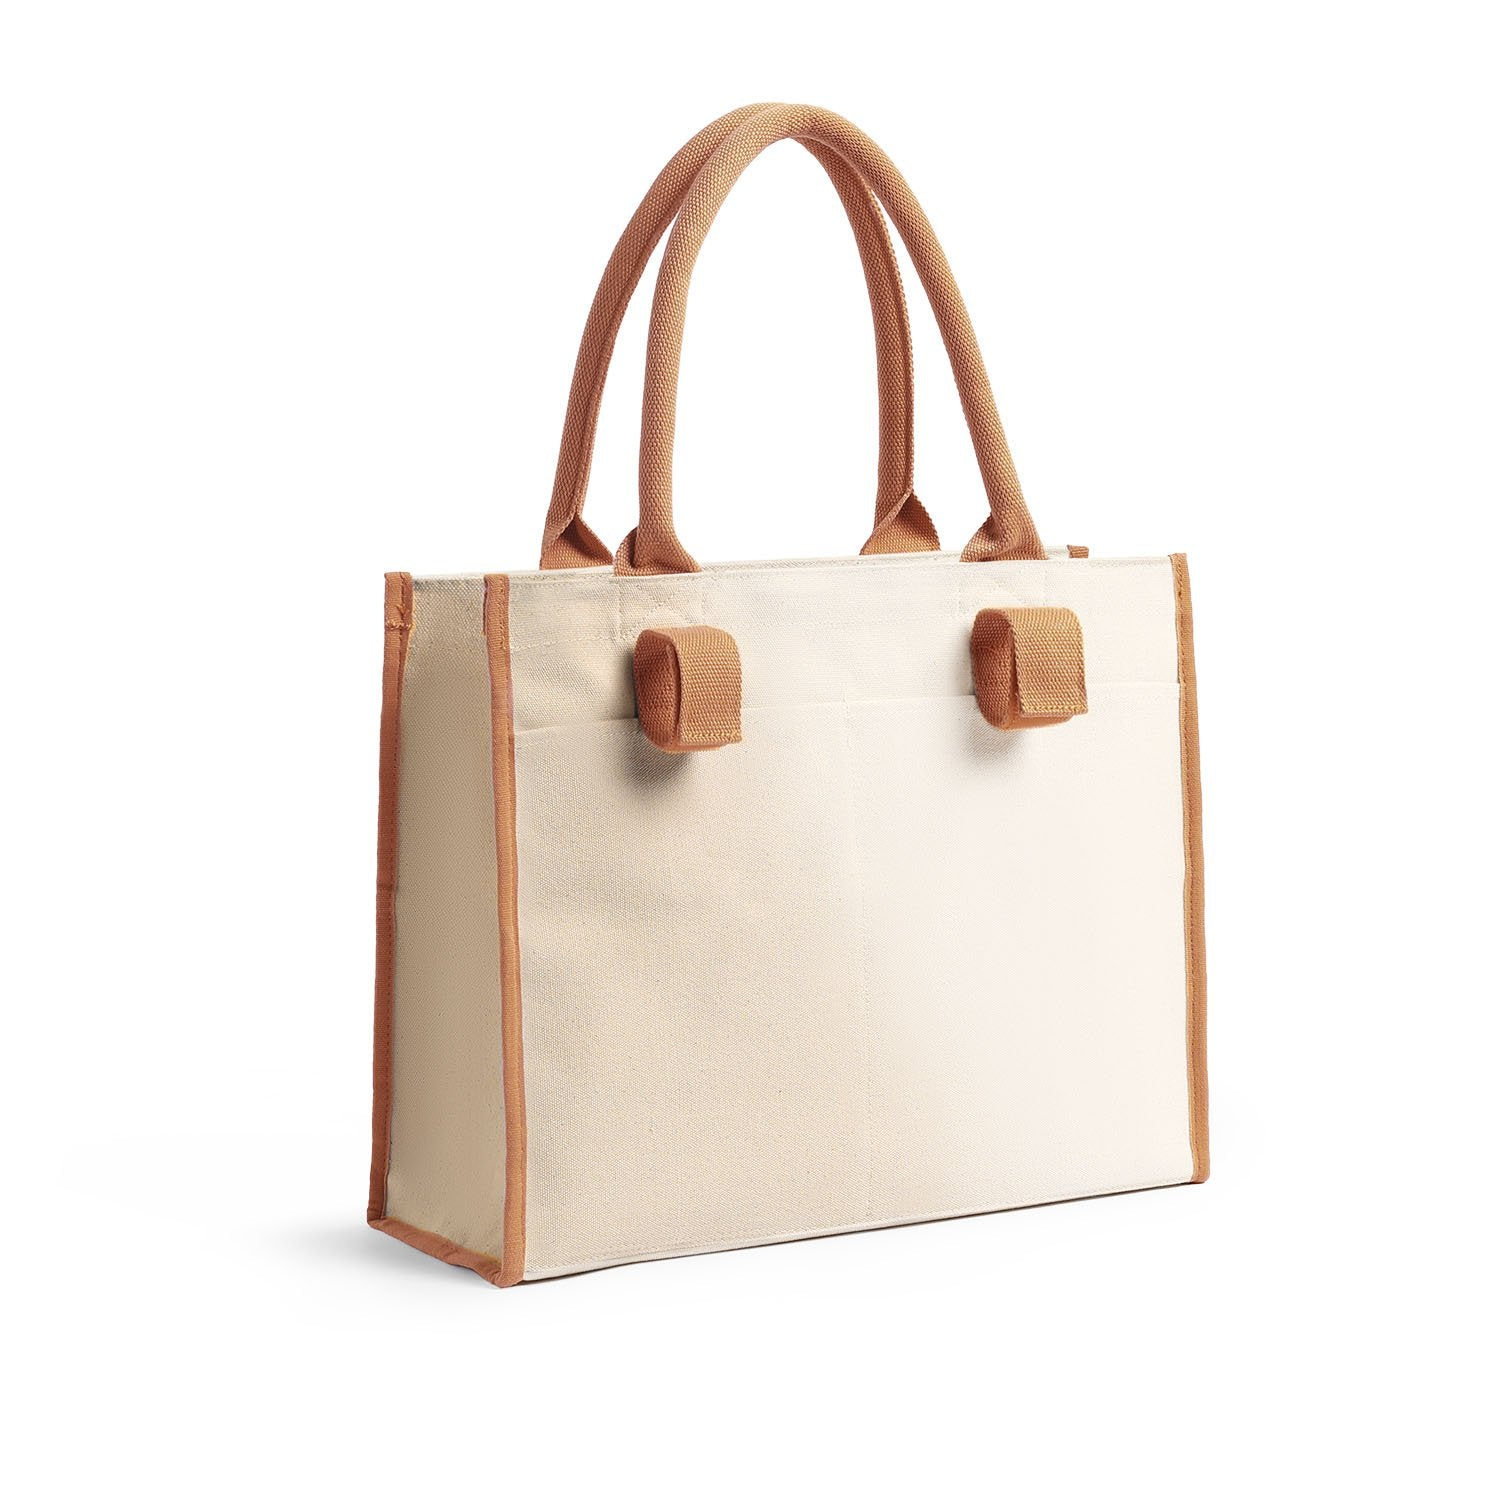 Super Estela - Beige/Nude Brown